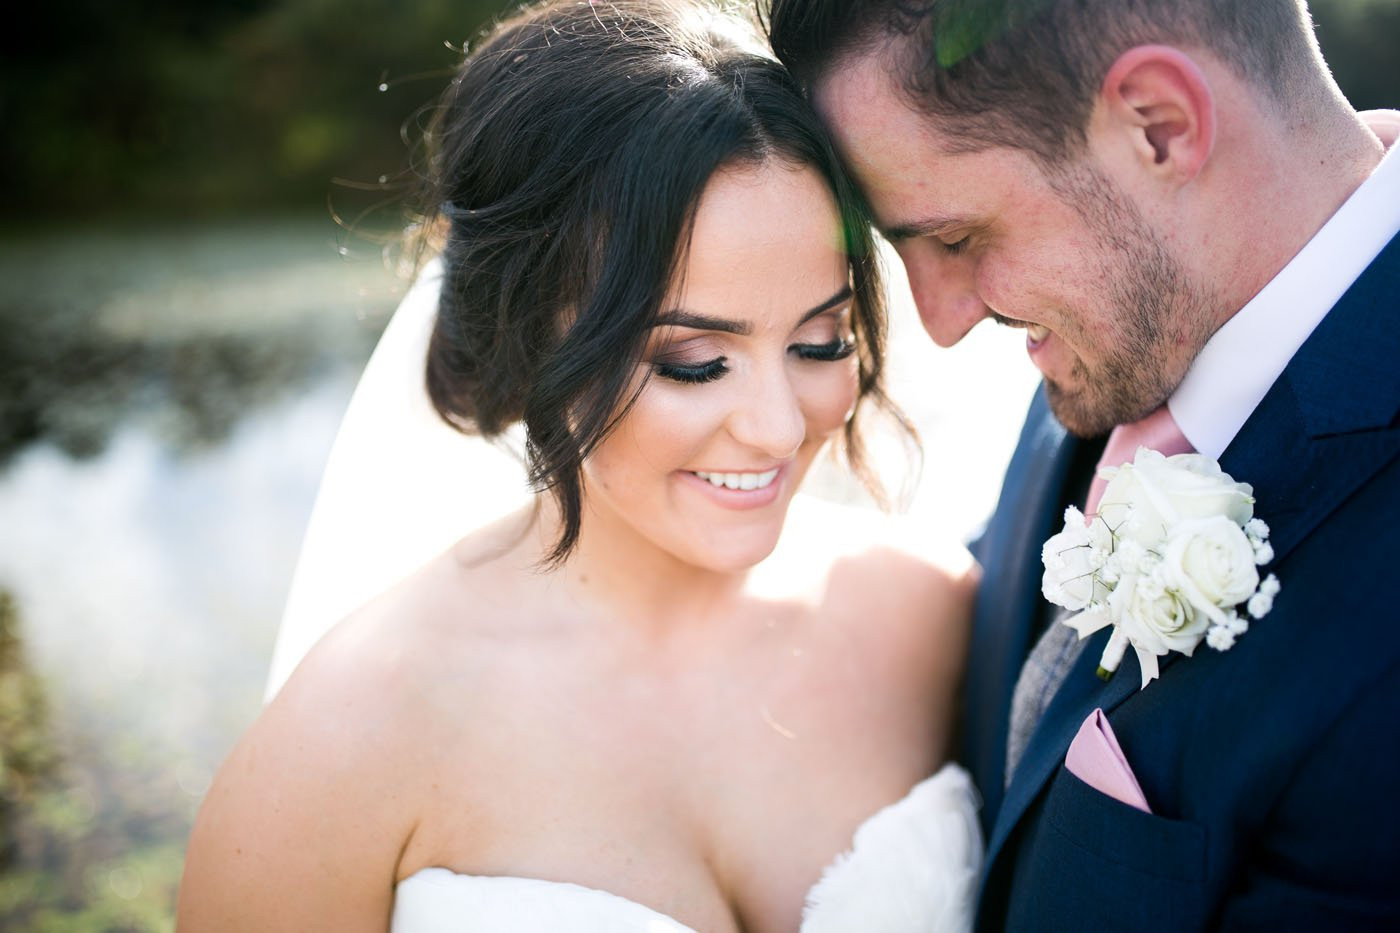 A bride and groom lower their foreheads together at Oldwalls